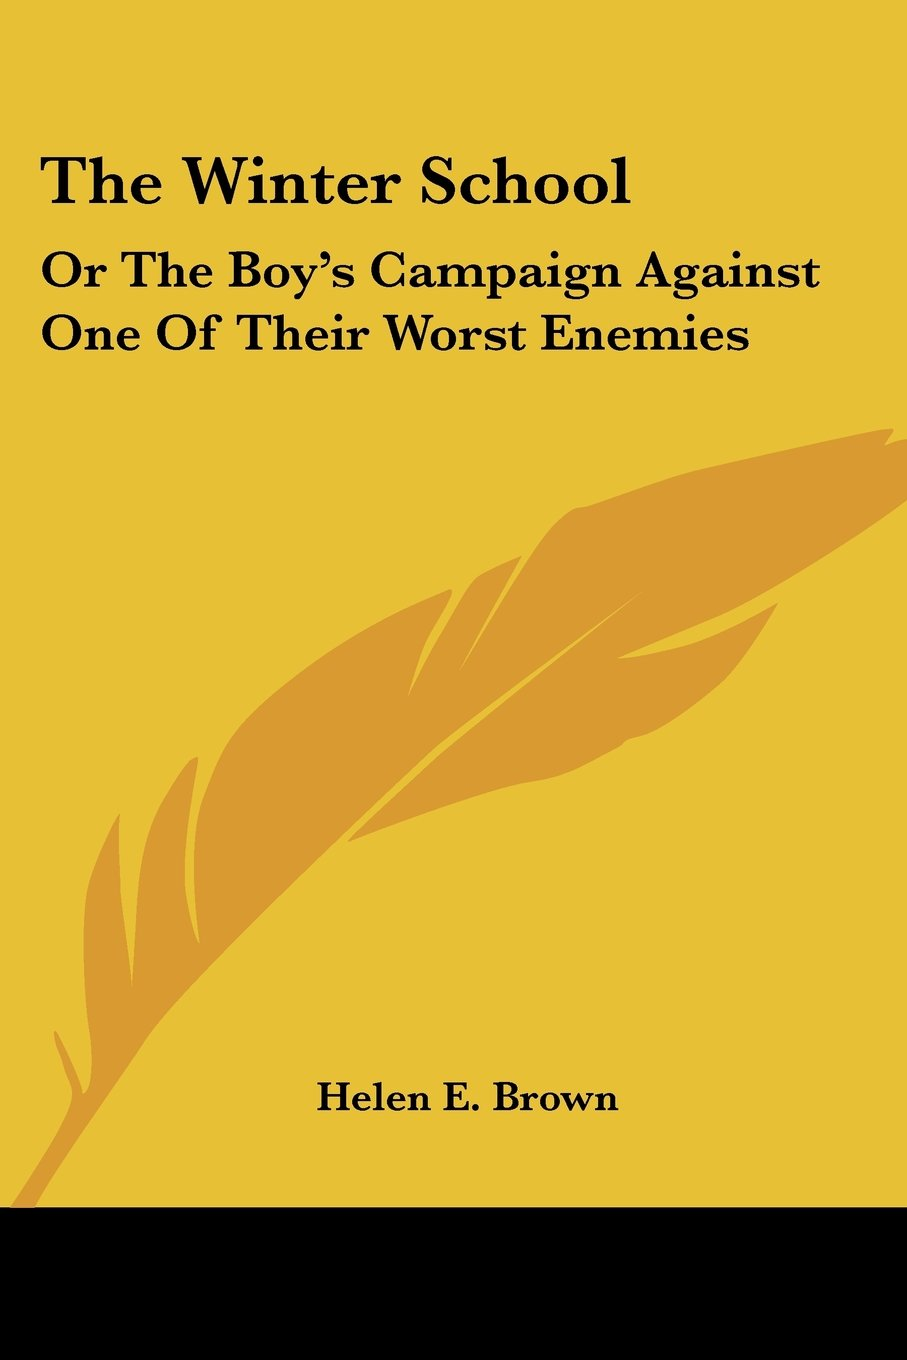 The Winter School: Or The Boy's Campaign Against One Of Their Worst Enemies ebook